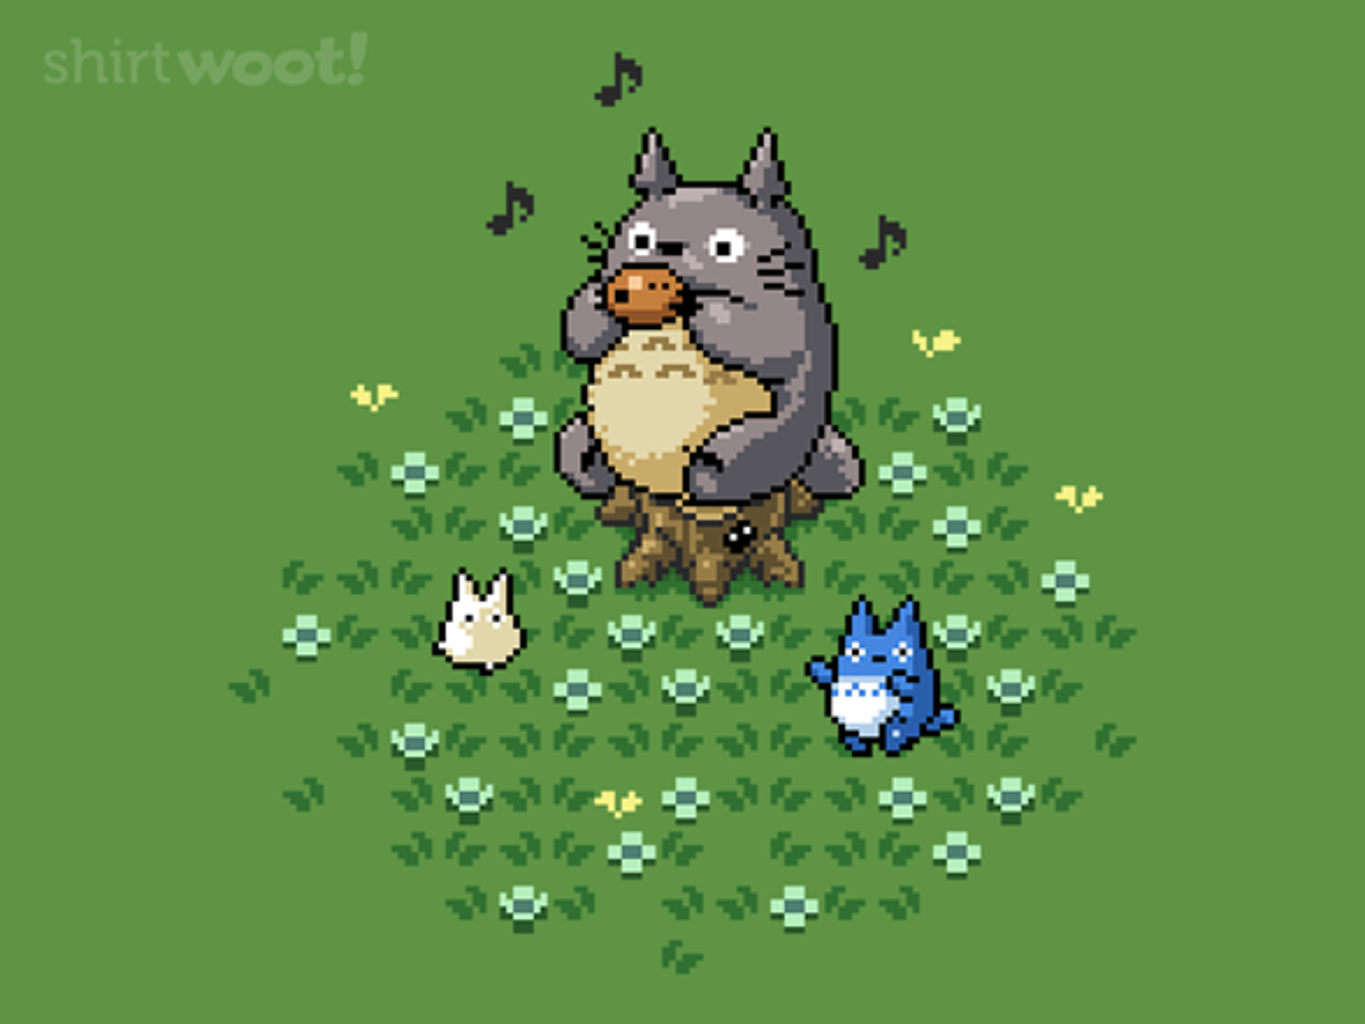 Woot!: Forest Melody